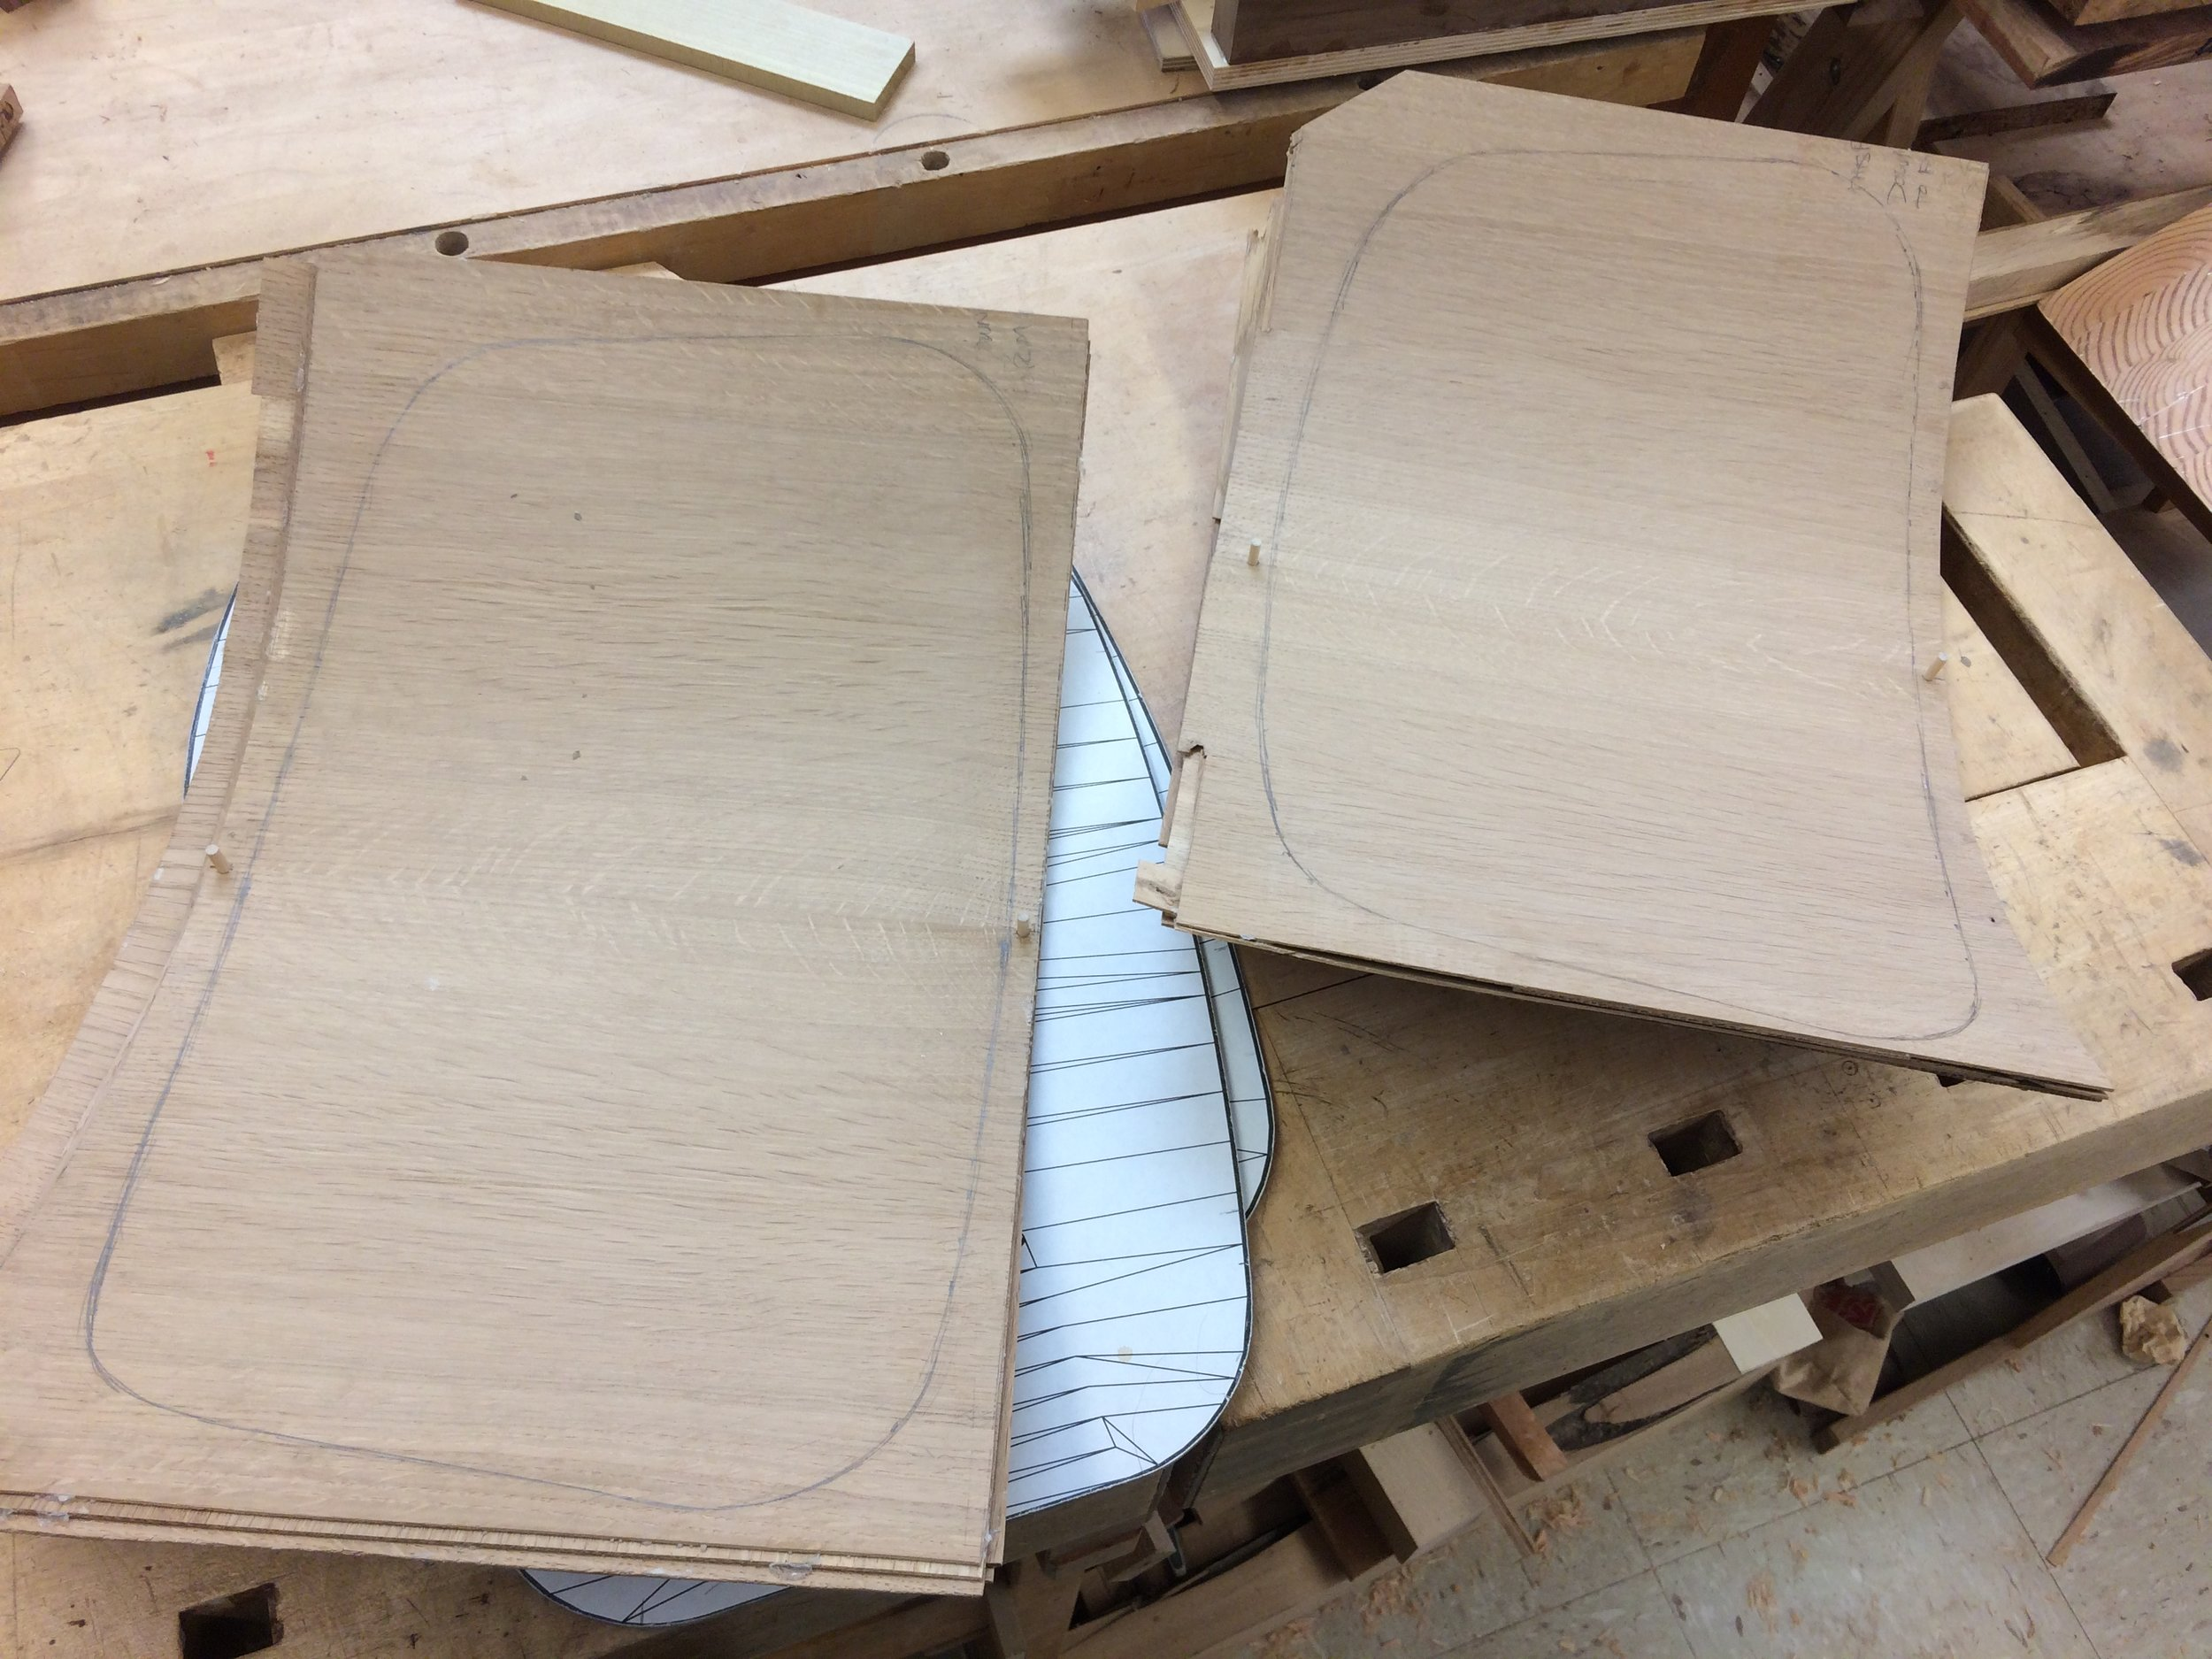 After a few hours in the press, the plywood shells are marked for bandsawing to the final contour.